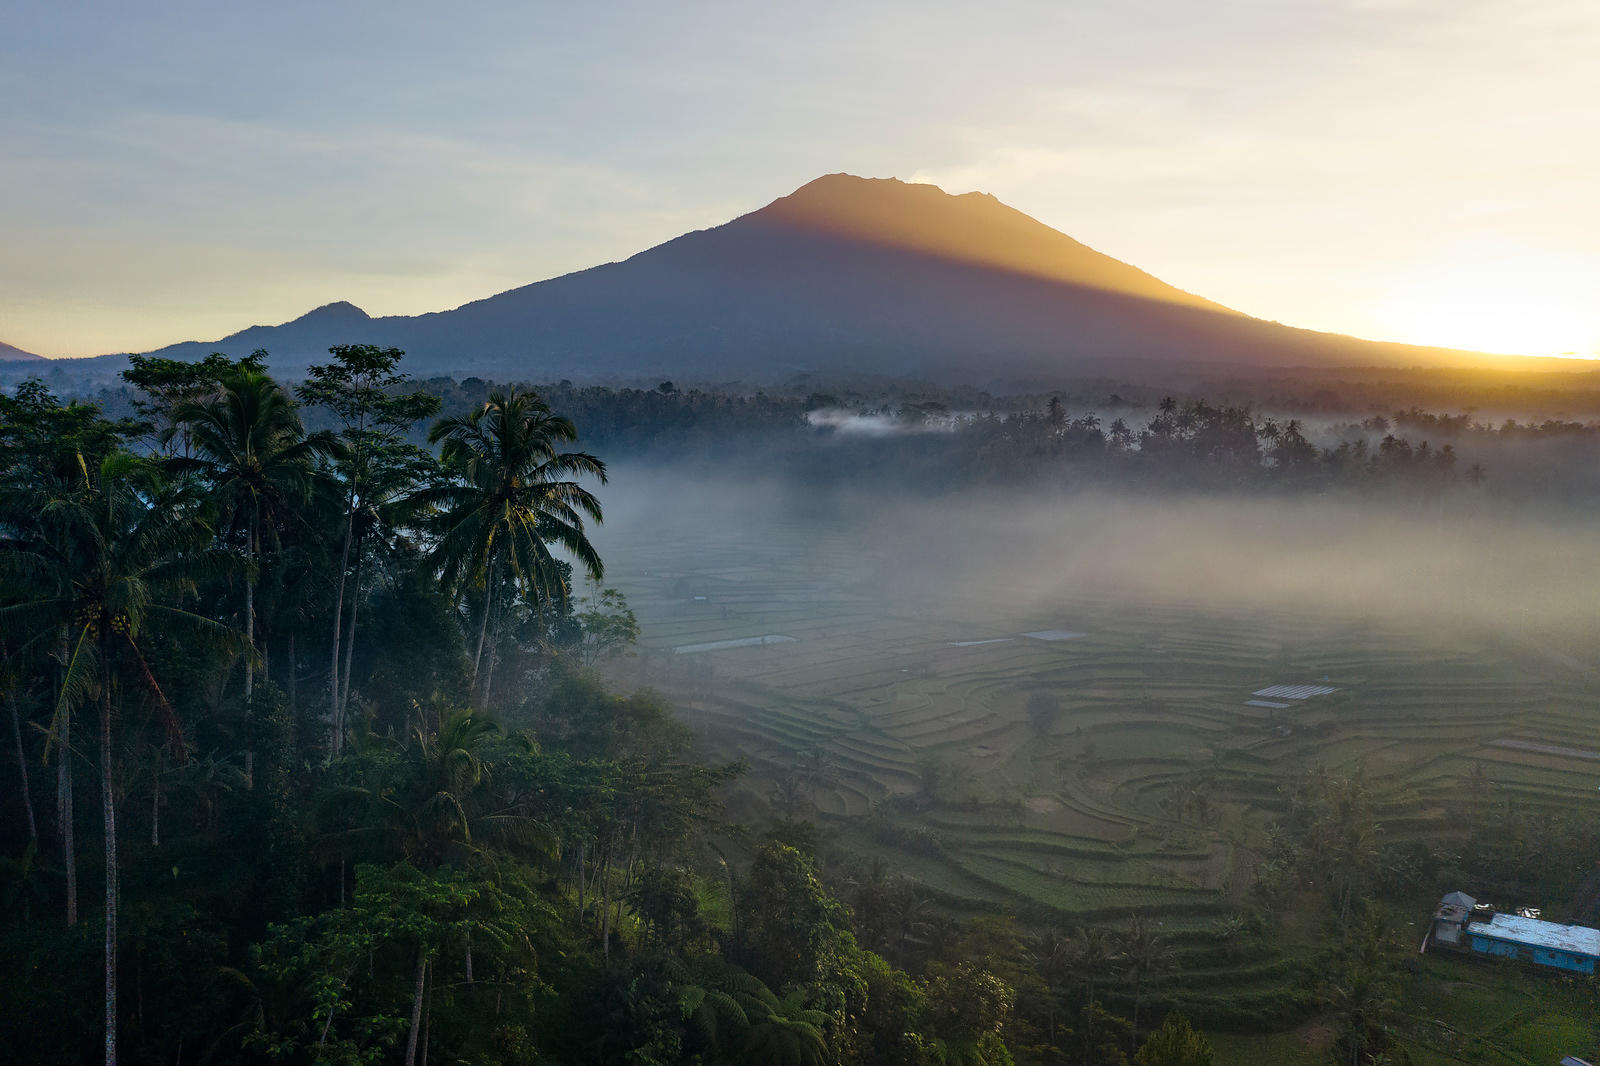 First Light over Bali